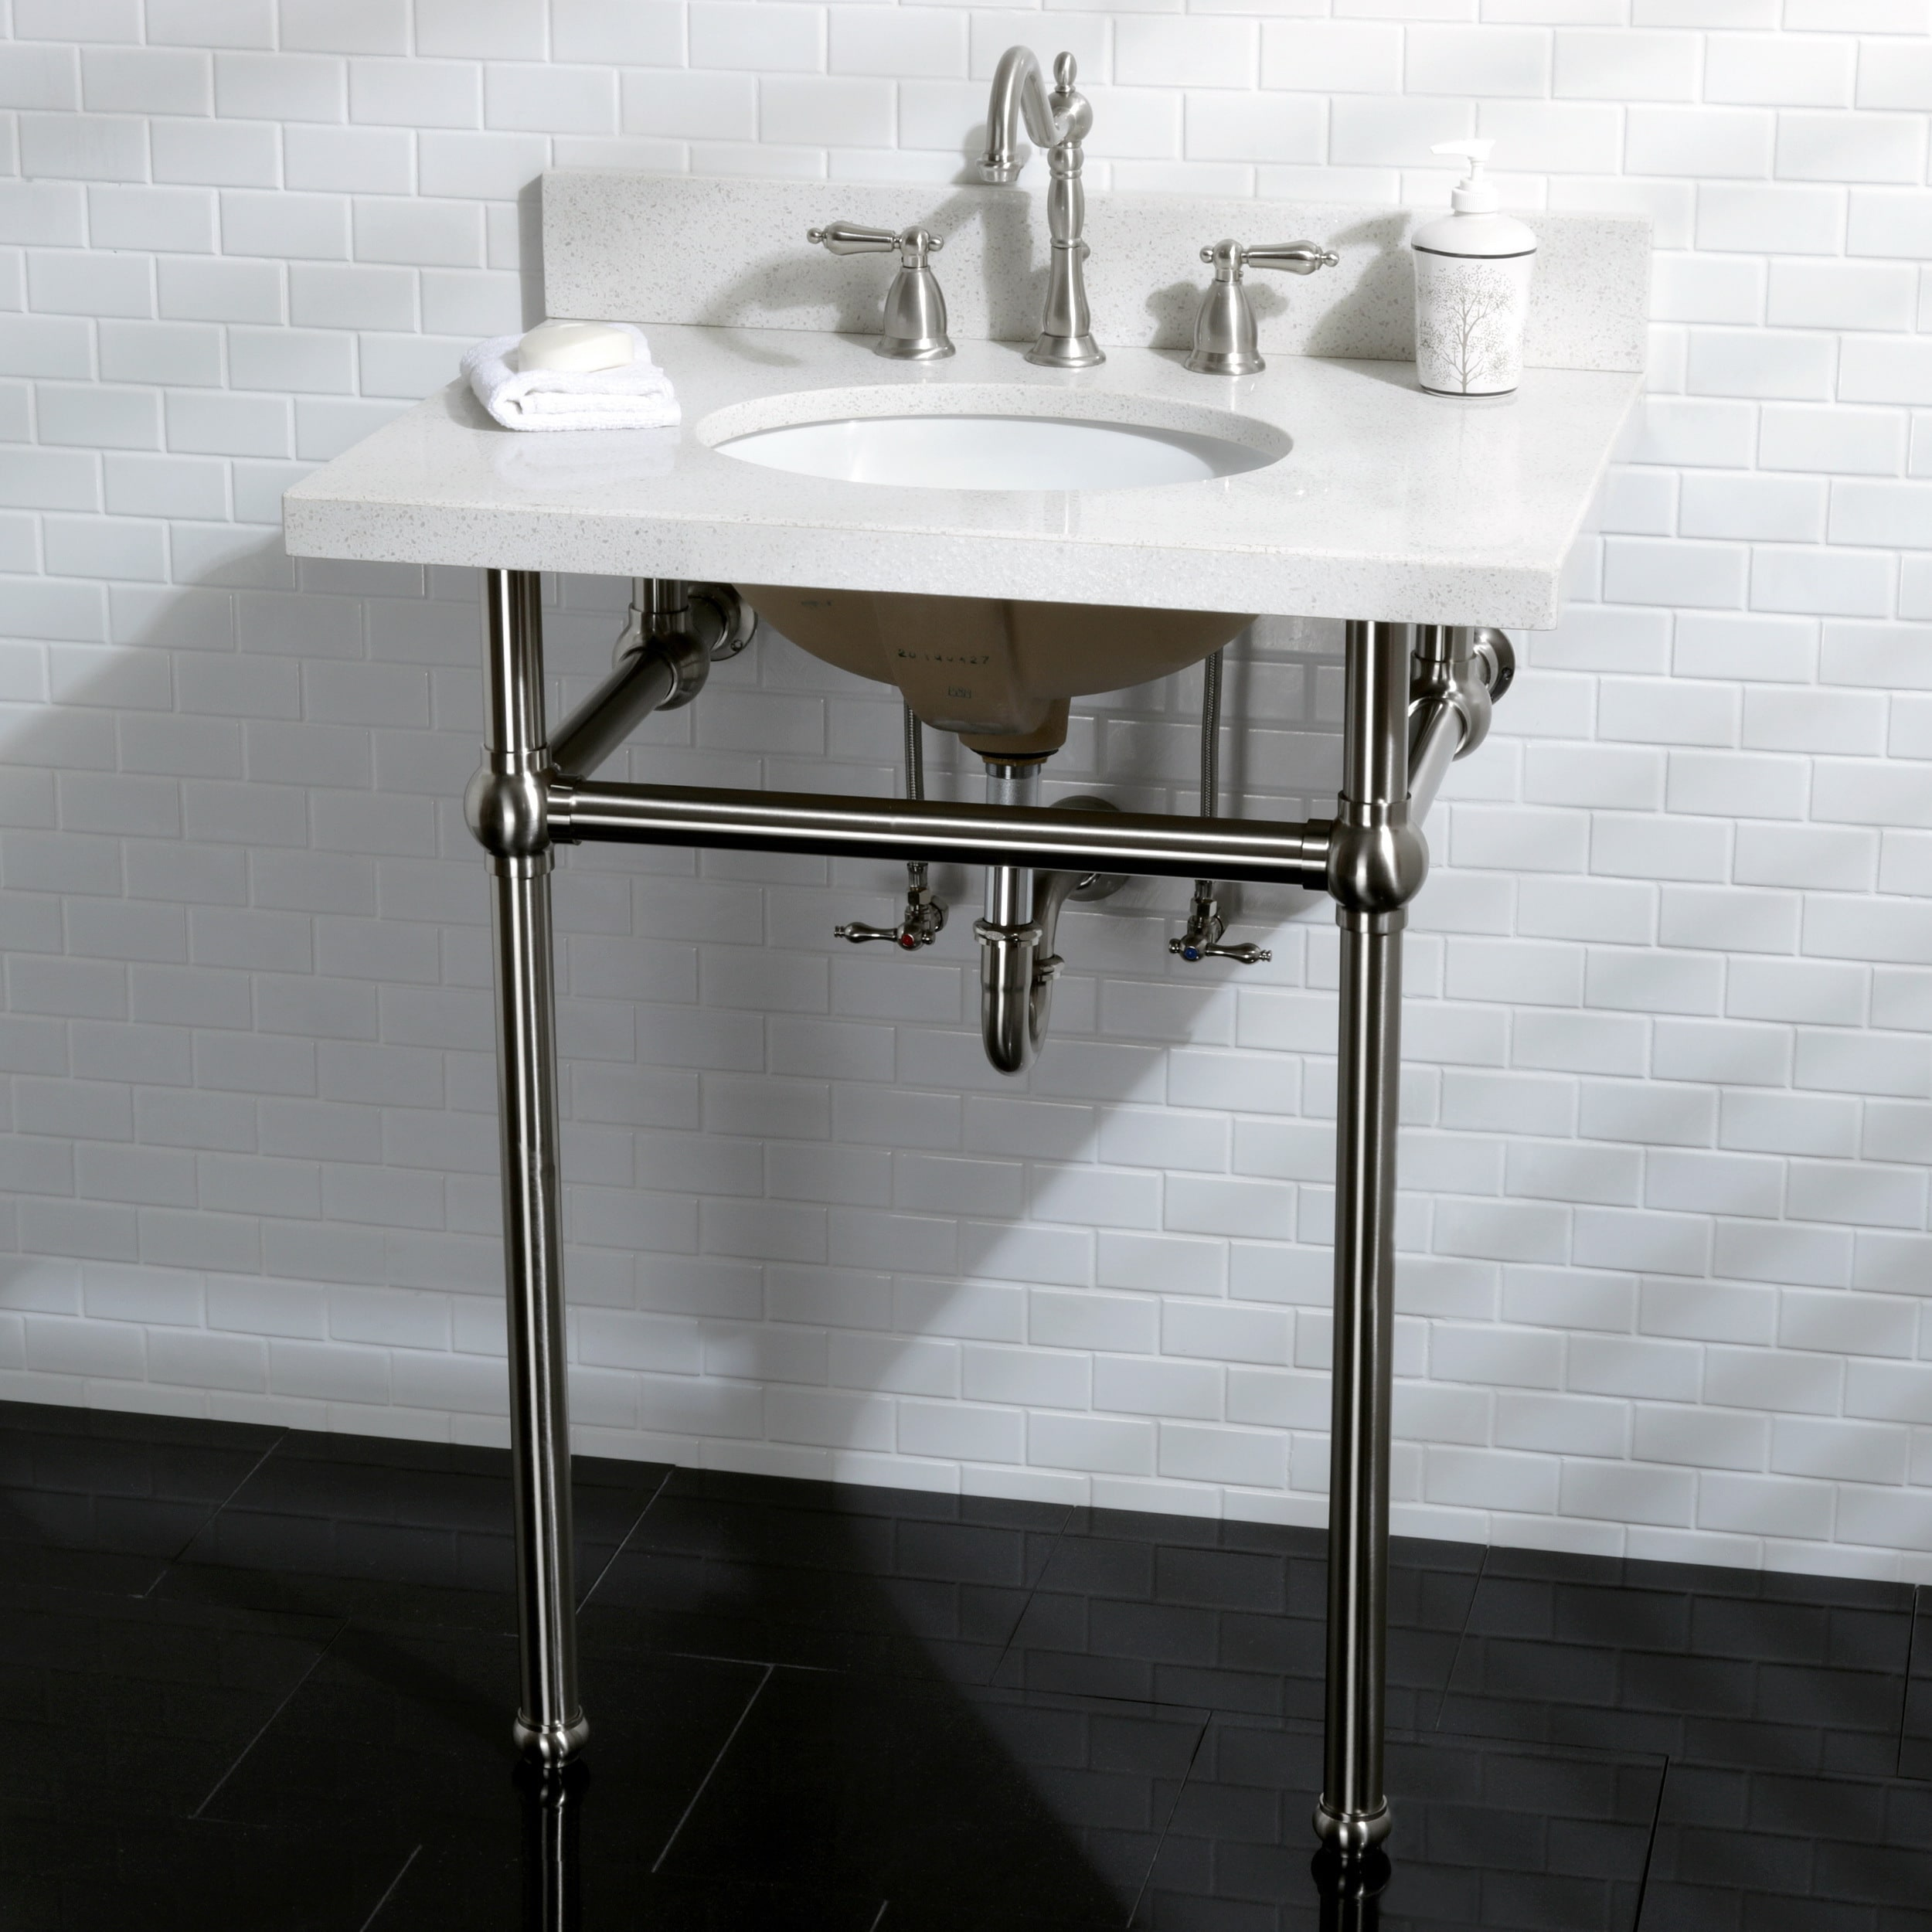 White Quartz 30 Inch Wall Mount Pedestal Bathroom Sink Vanity With Metal Stand Free Shipping Today 12898405